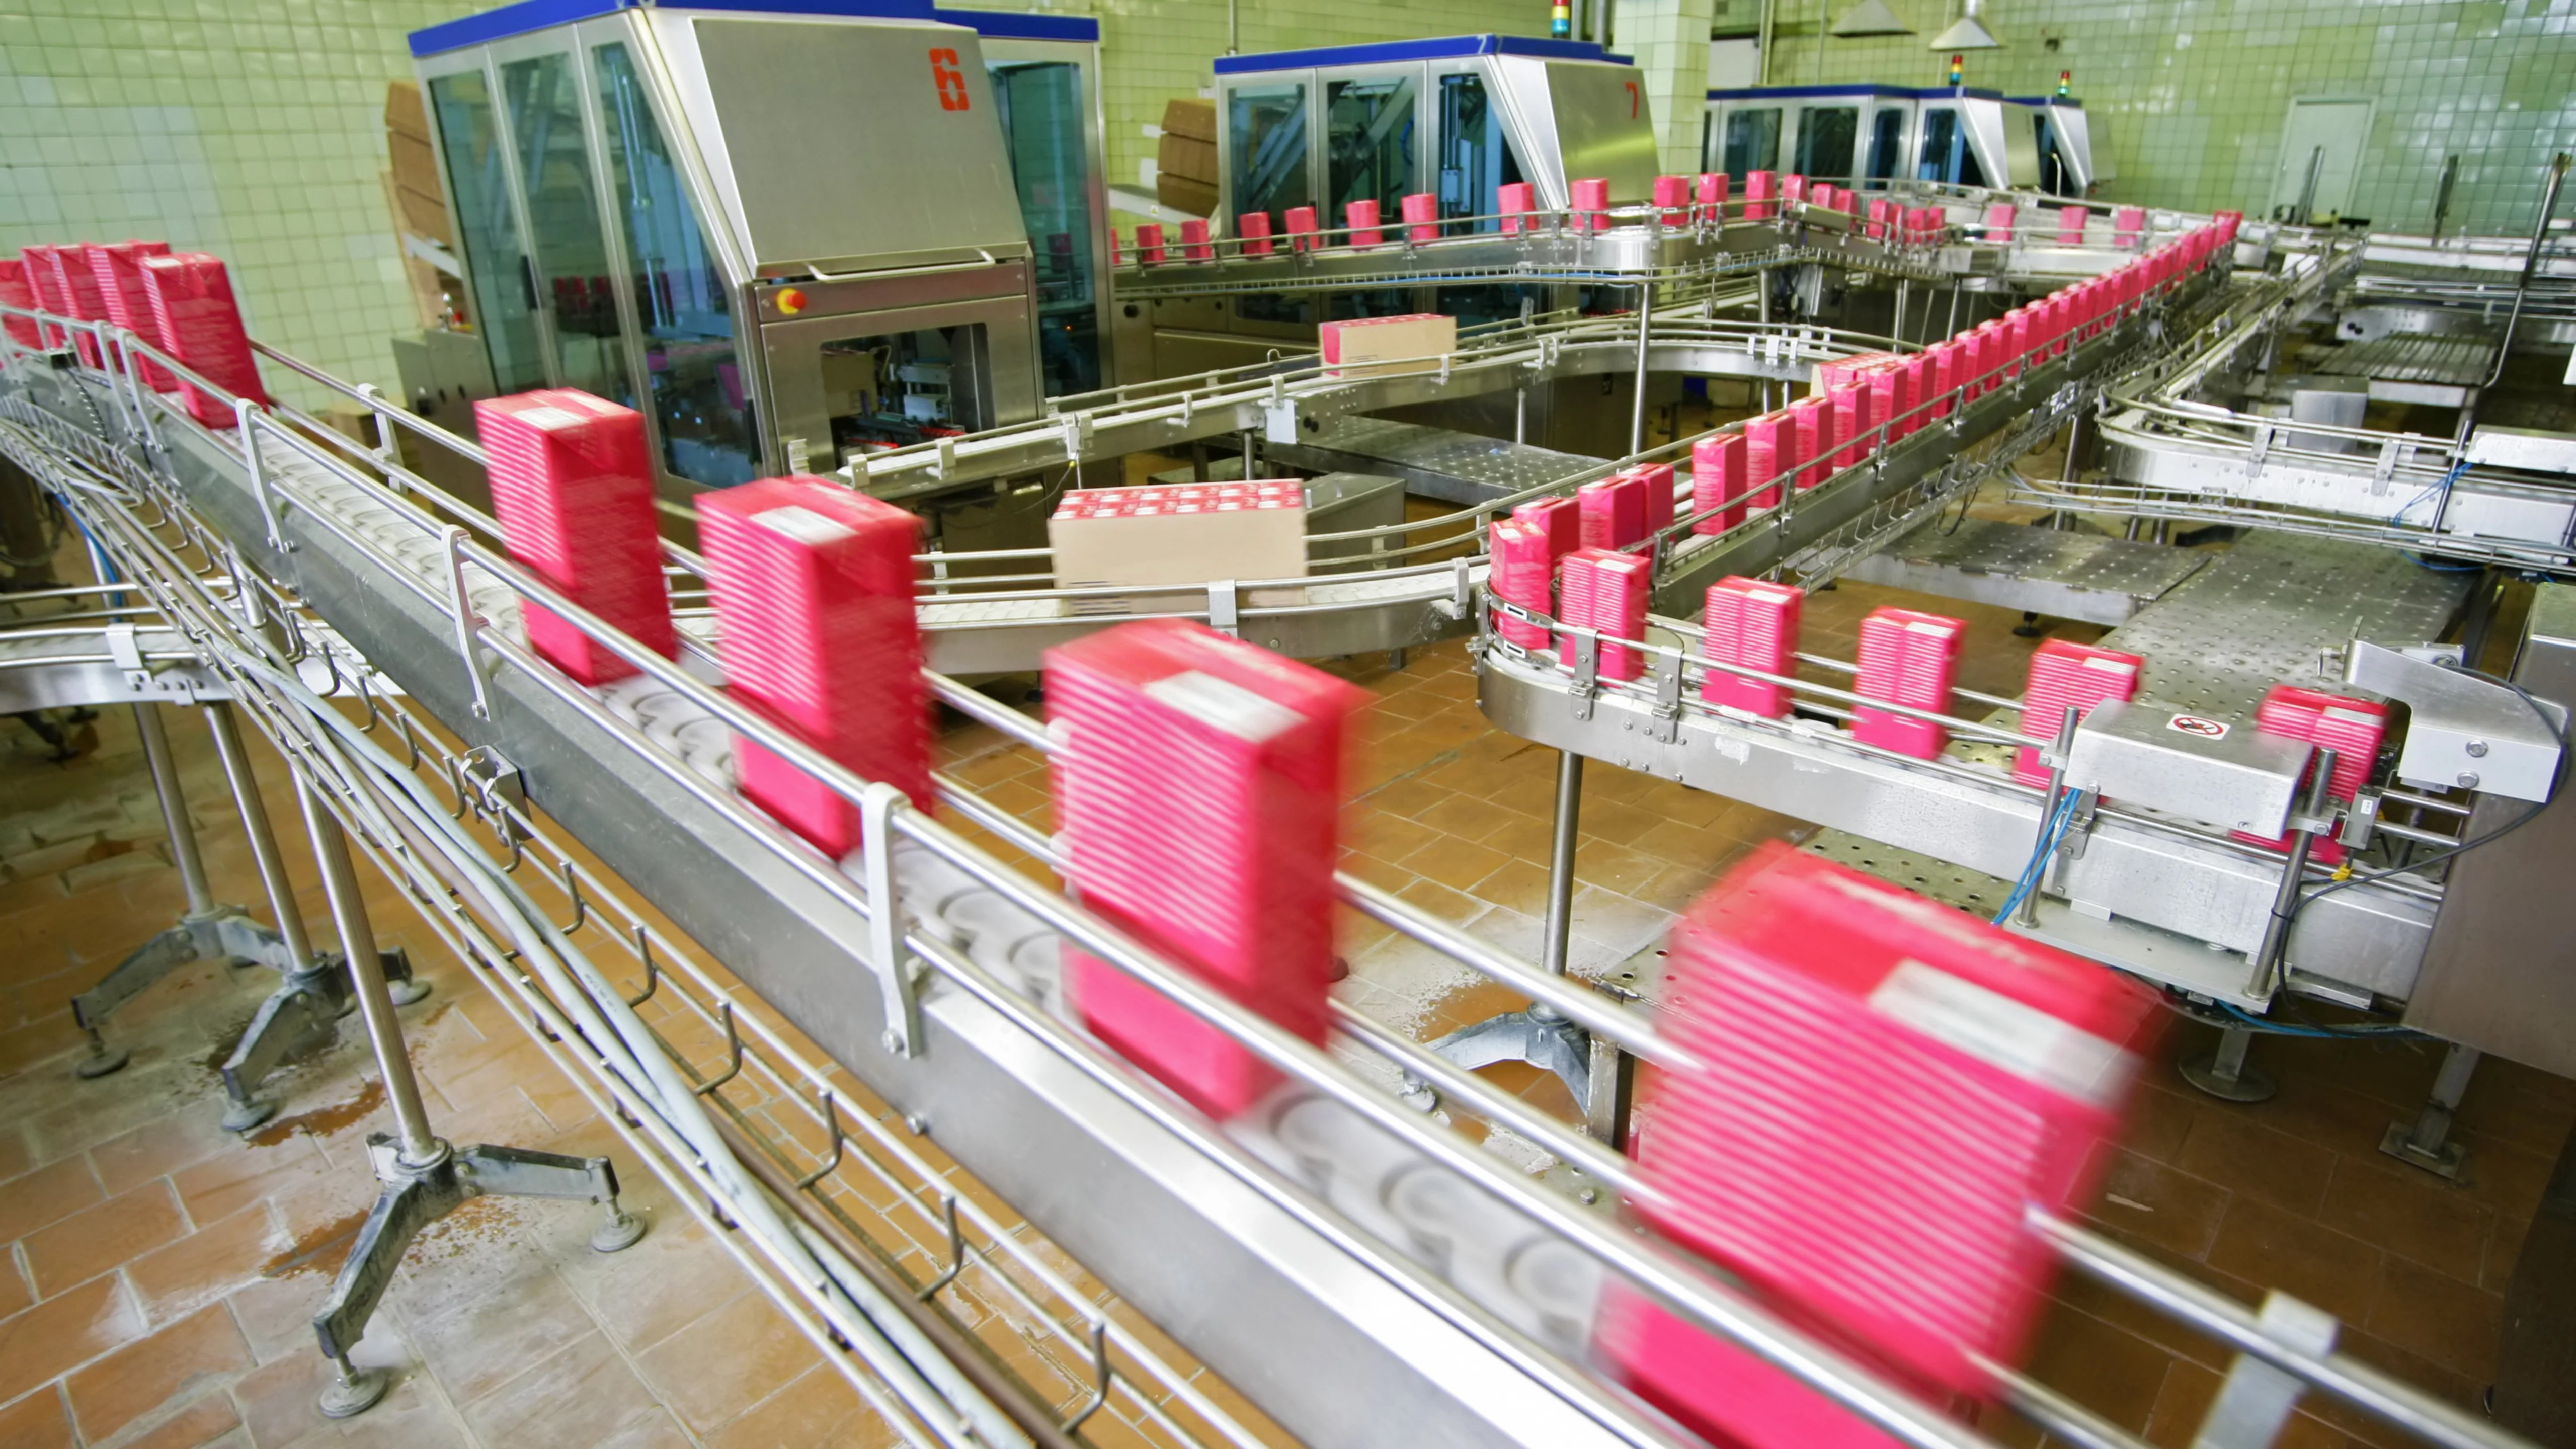 pink boxes moving on conveyor system in a factory